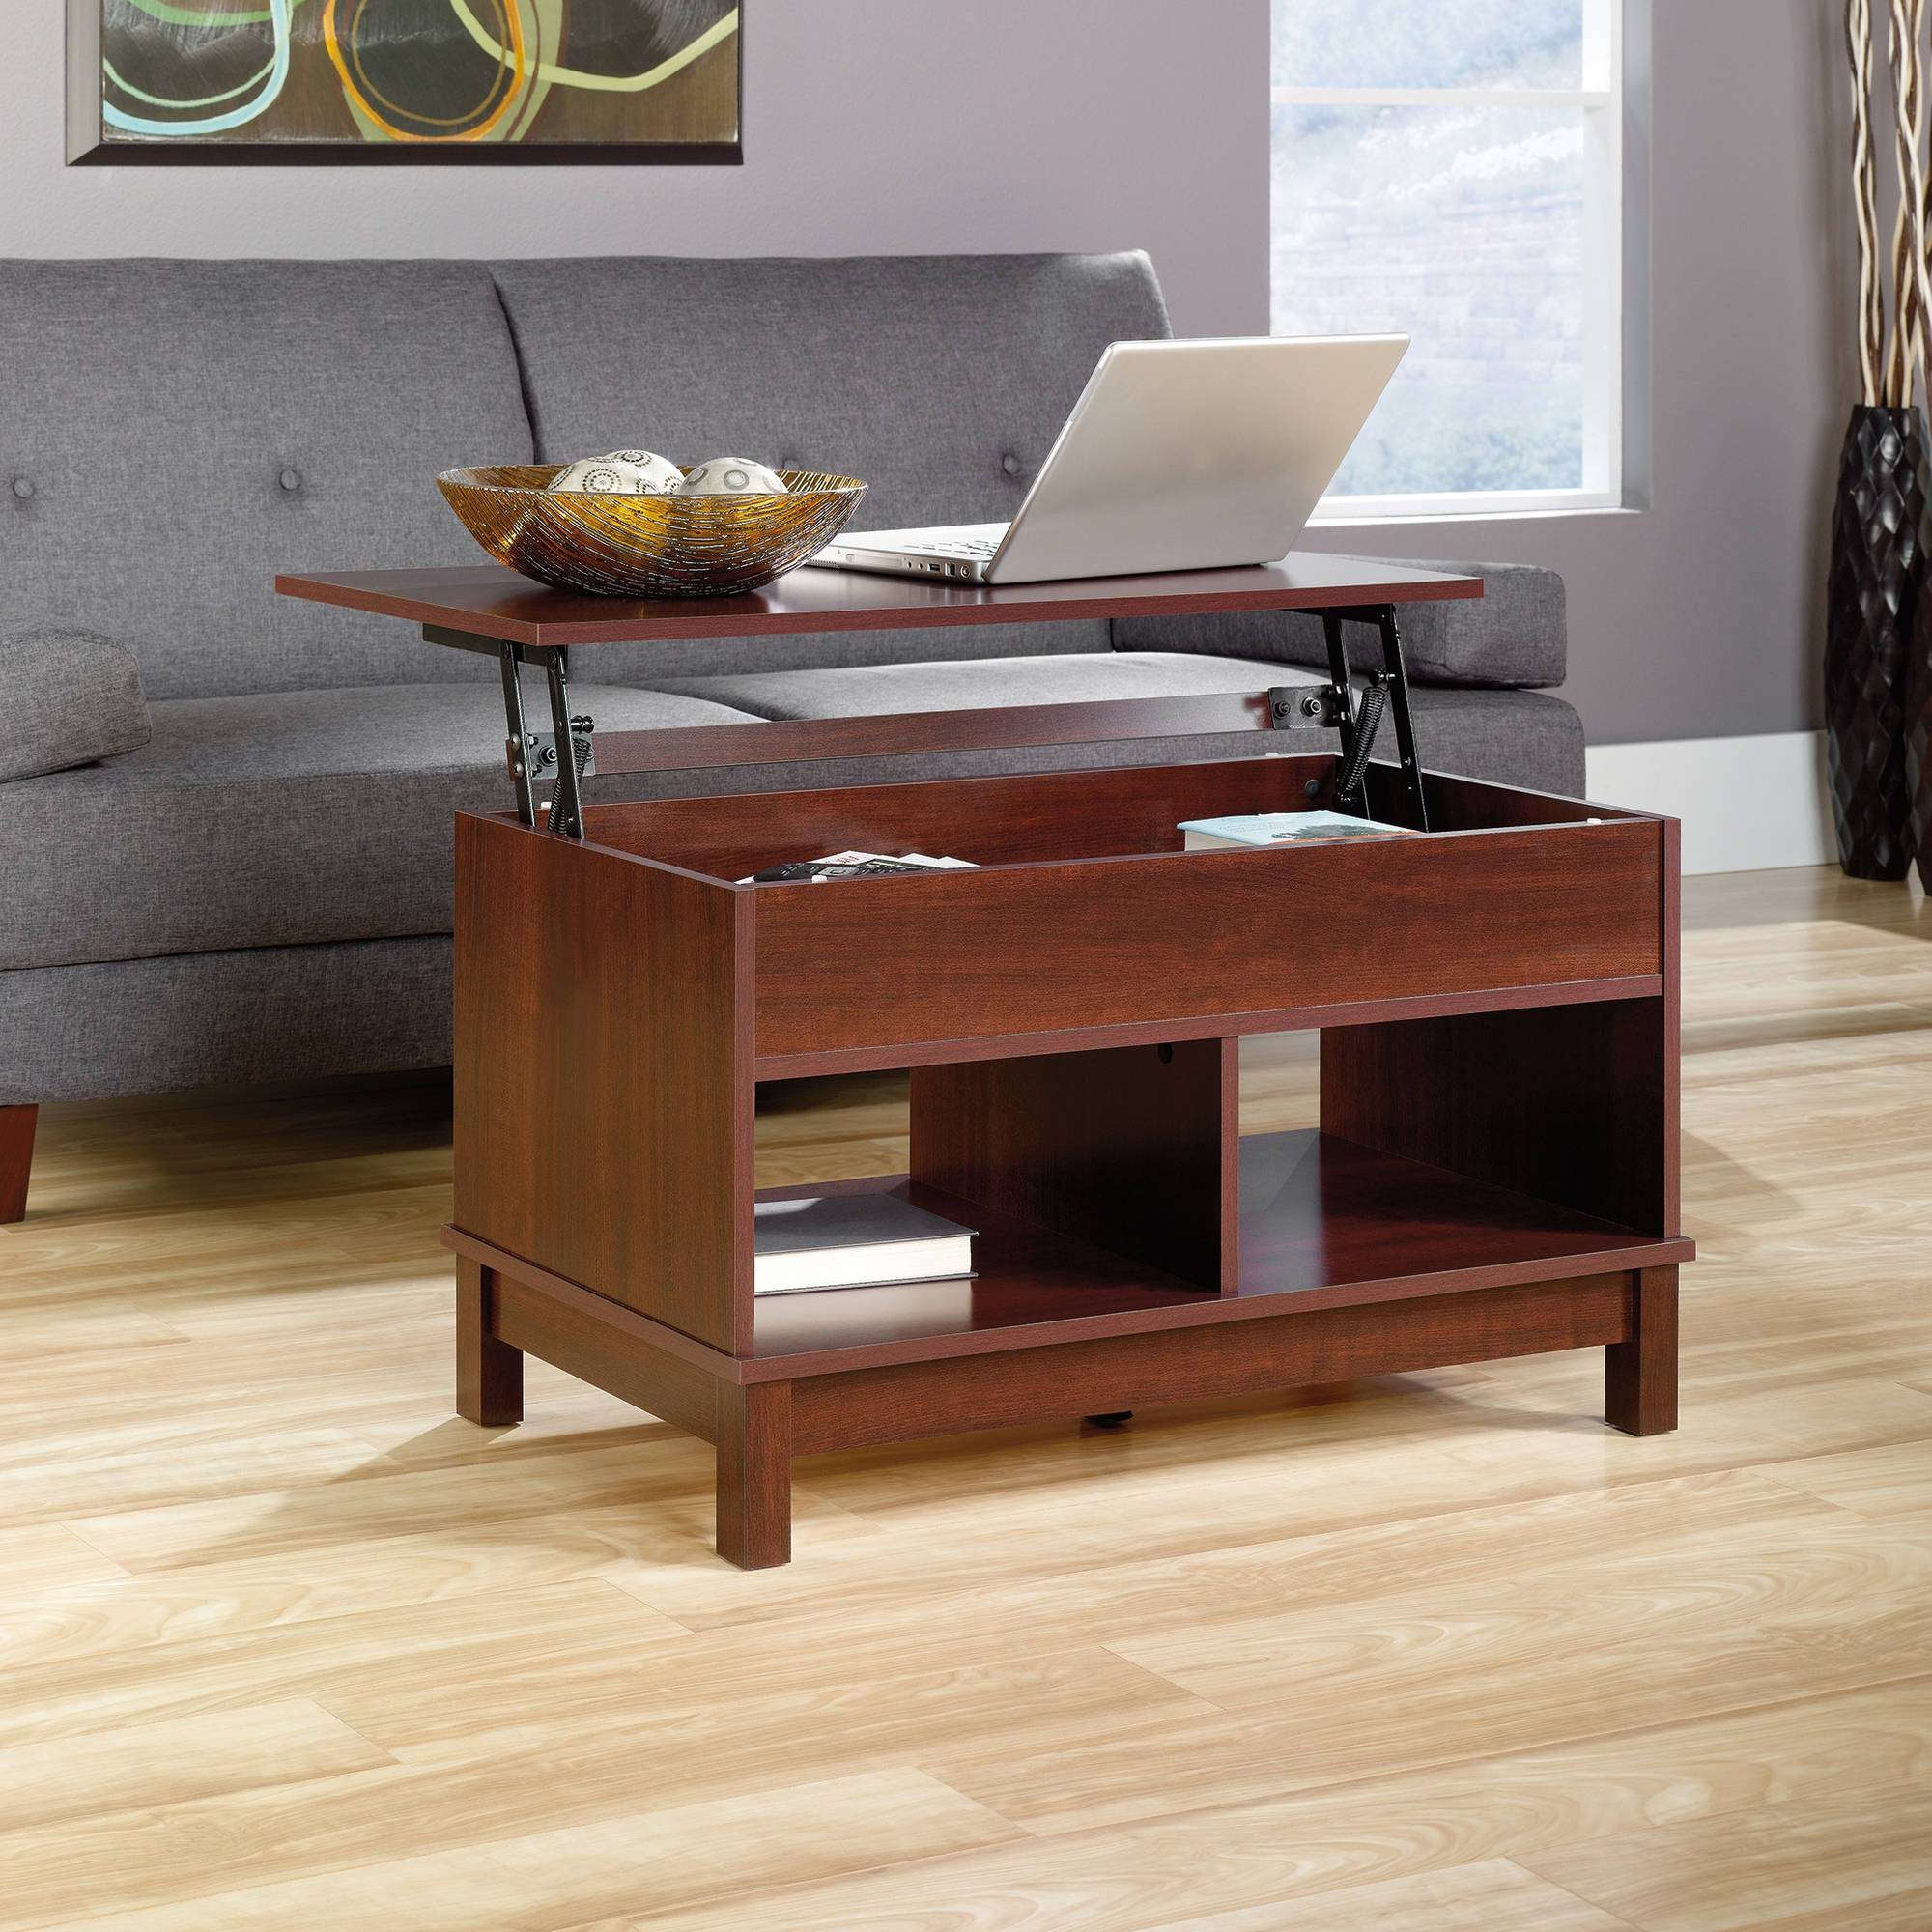 Sauder Kendall Square Lift Top Coffee Table, Cherry – Walmart Throughout Current Lift Top Coffee Tables With Storage (View 5 of 20)